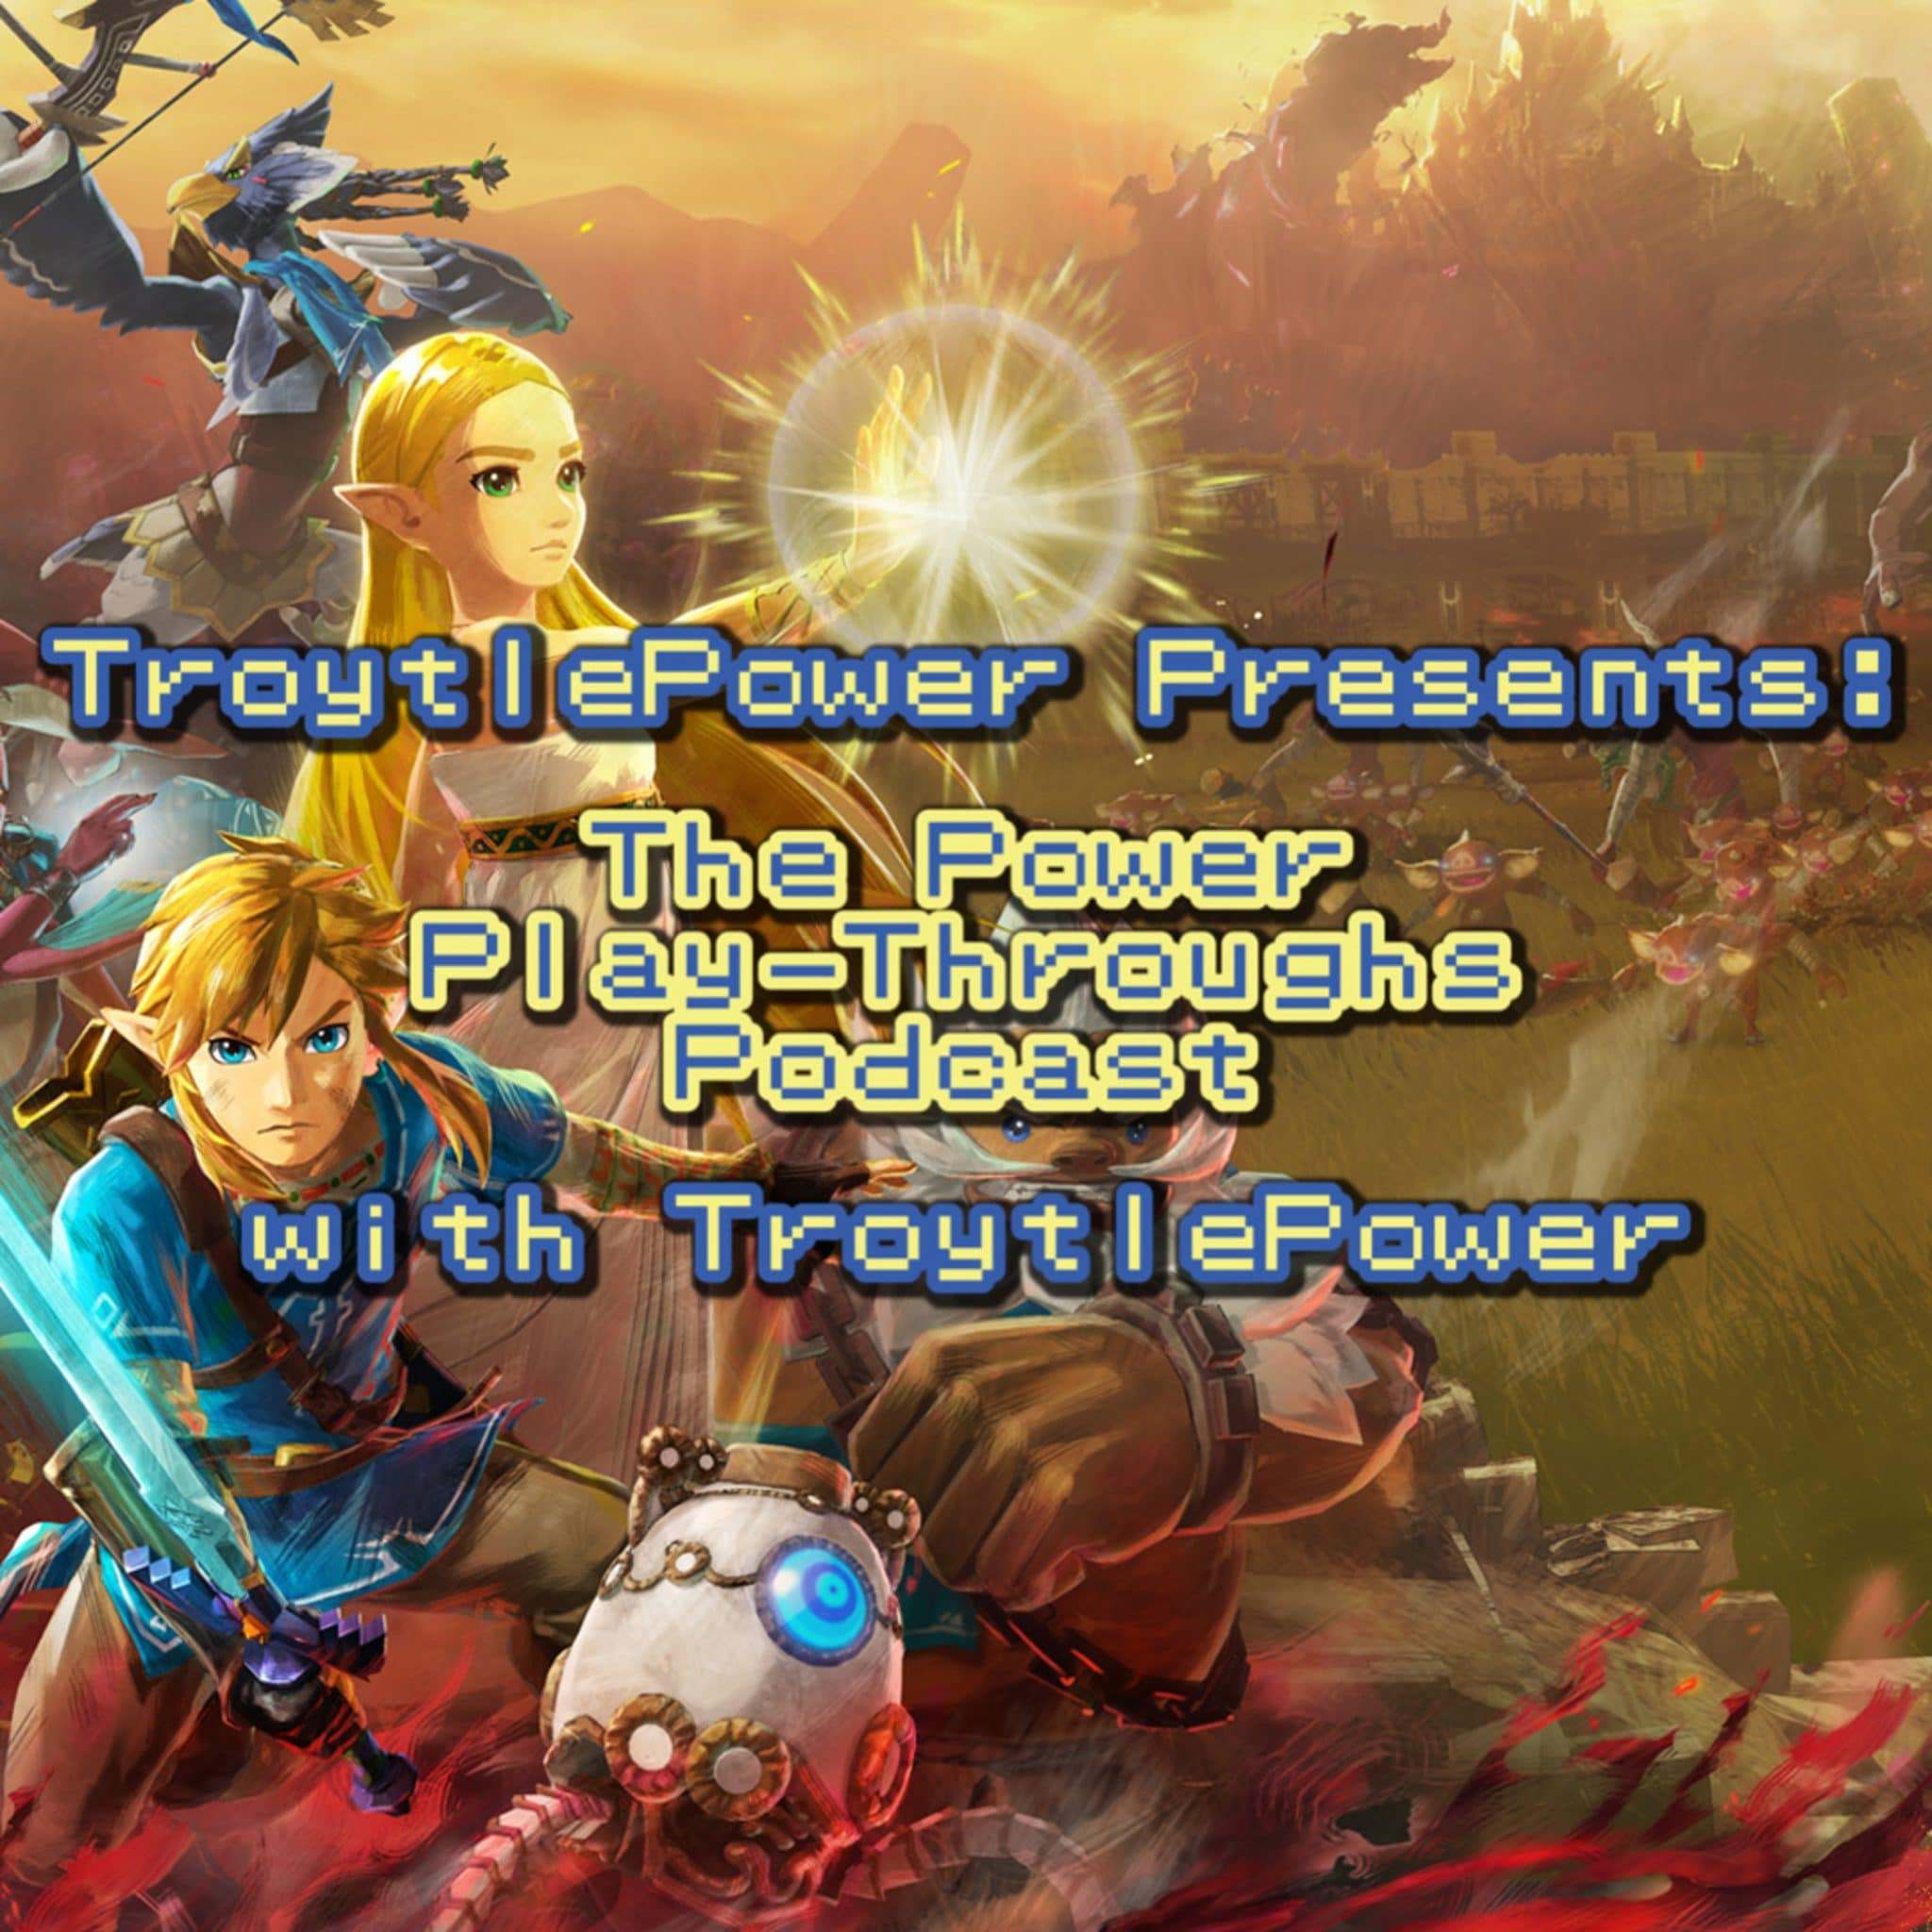 Hyrule Warriors Age Of Calamity Demo Nintendo Switch First Impressions Troytlepower Presents The Power Play Throughs Podcast With Troytlepower